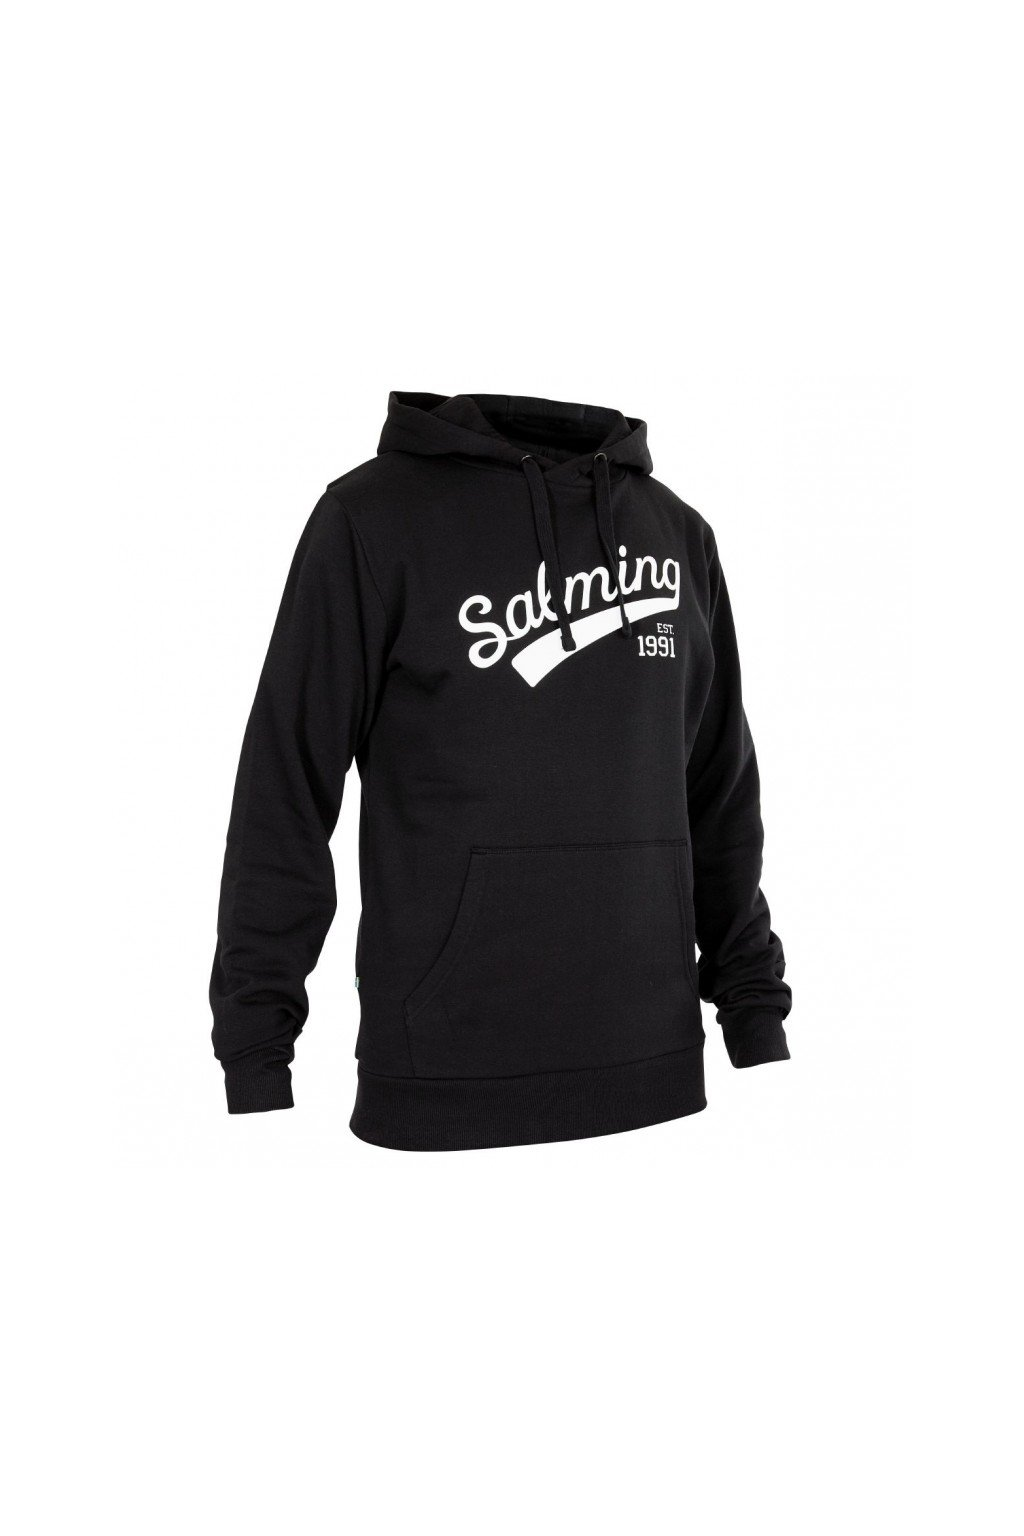 salming logo hood men black xxxl